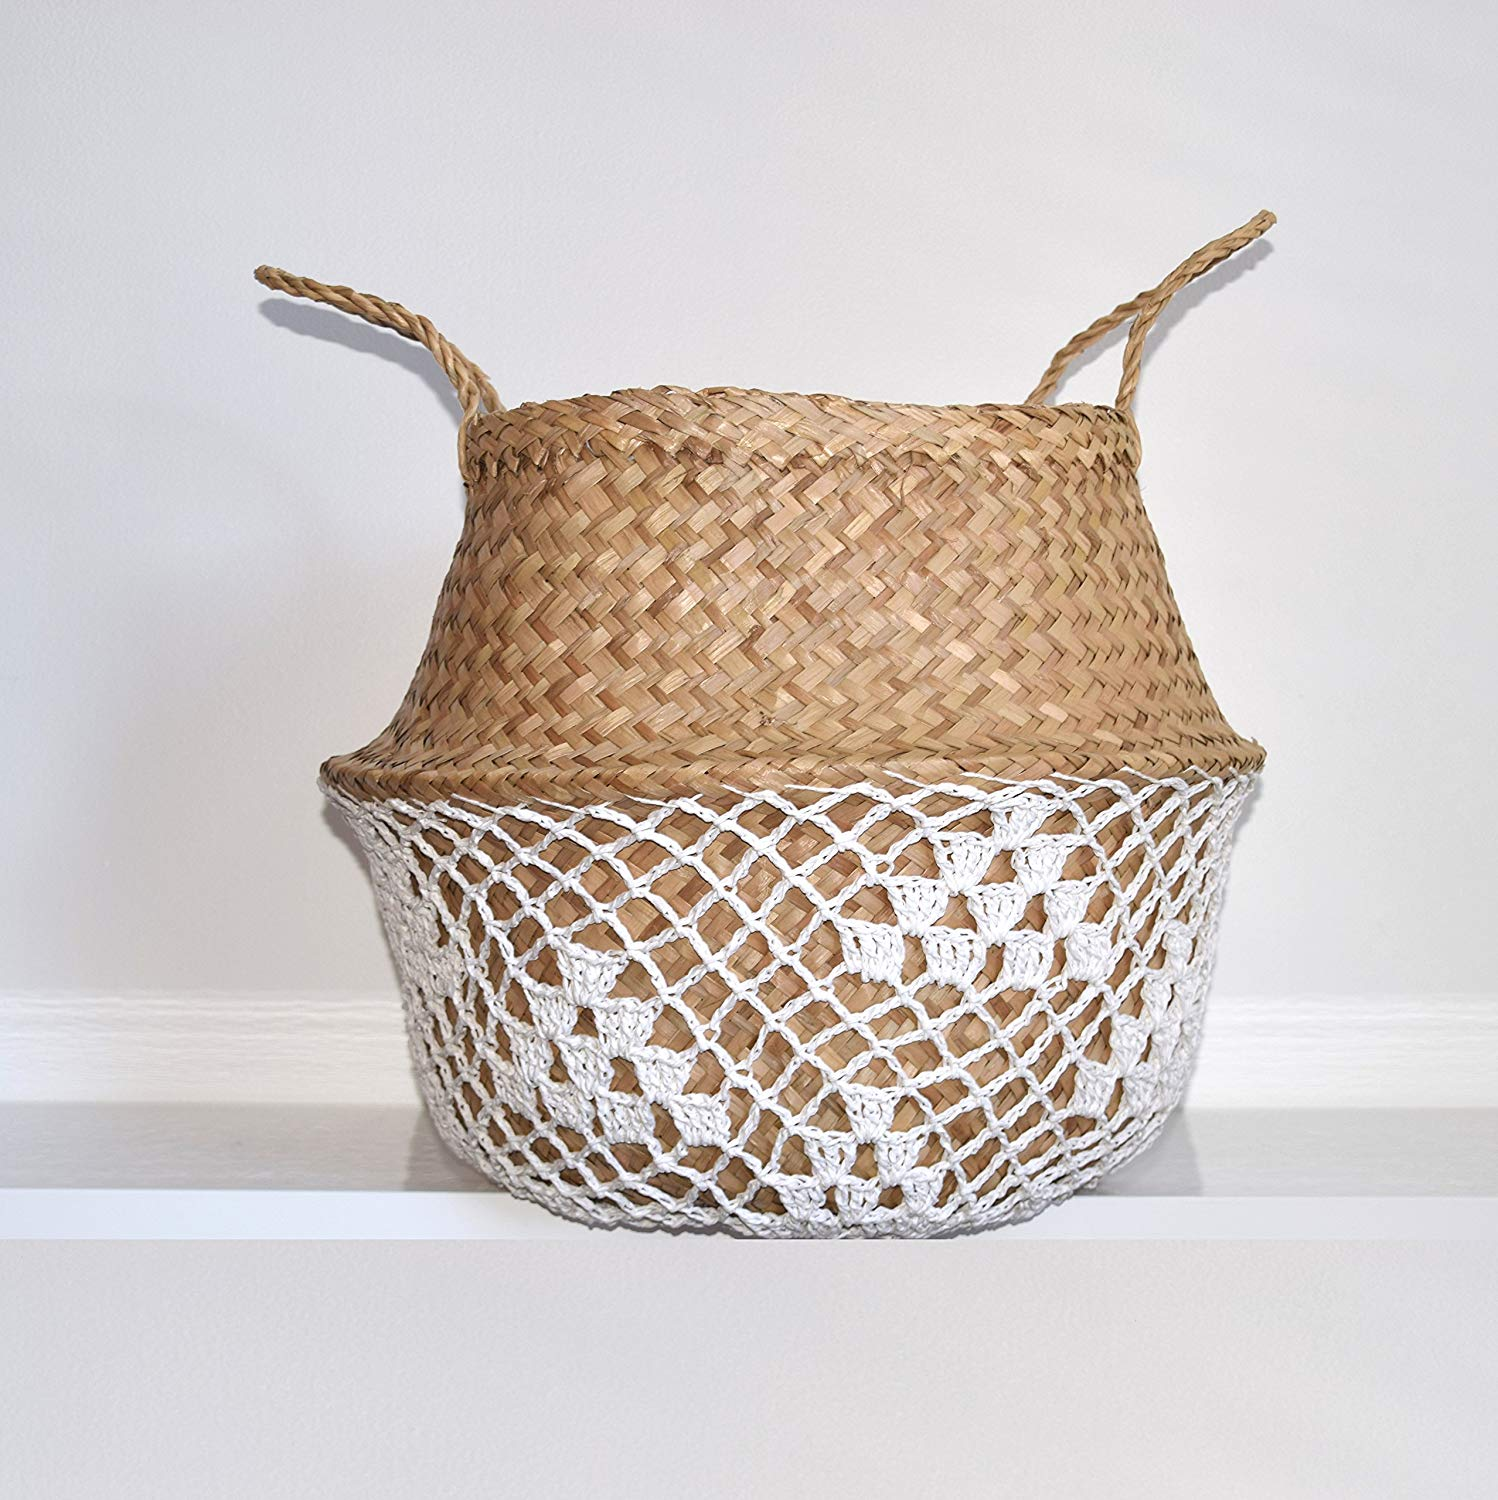 This basket from Amazon adds so much texture with the white net overlay.